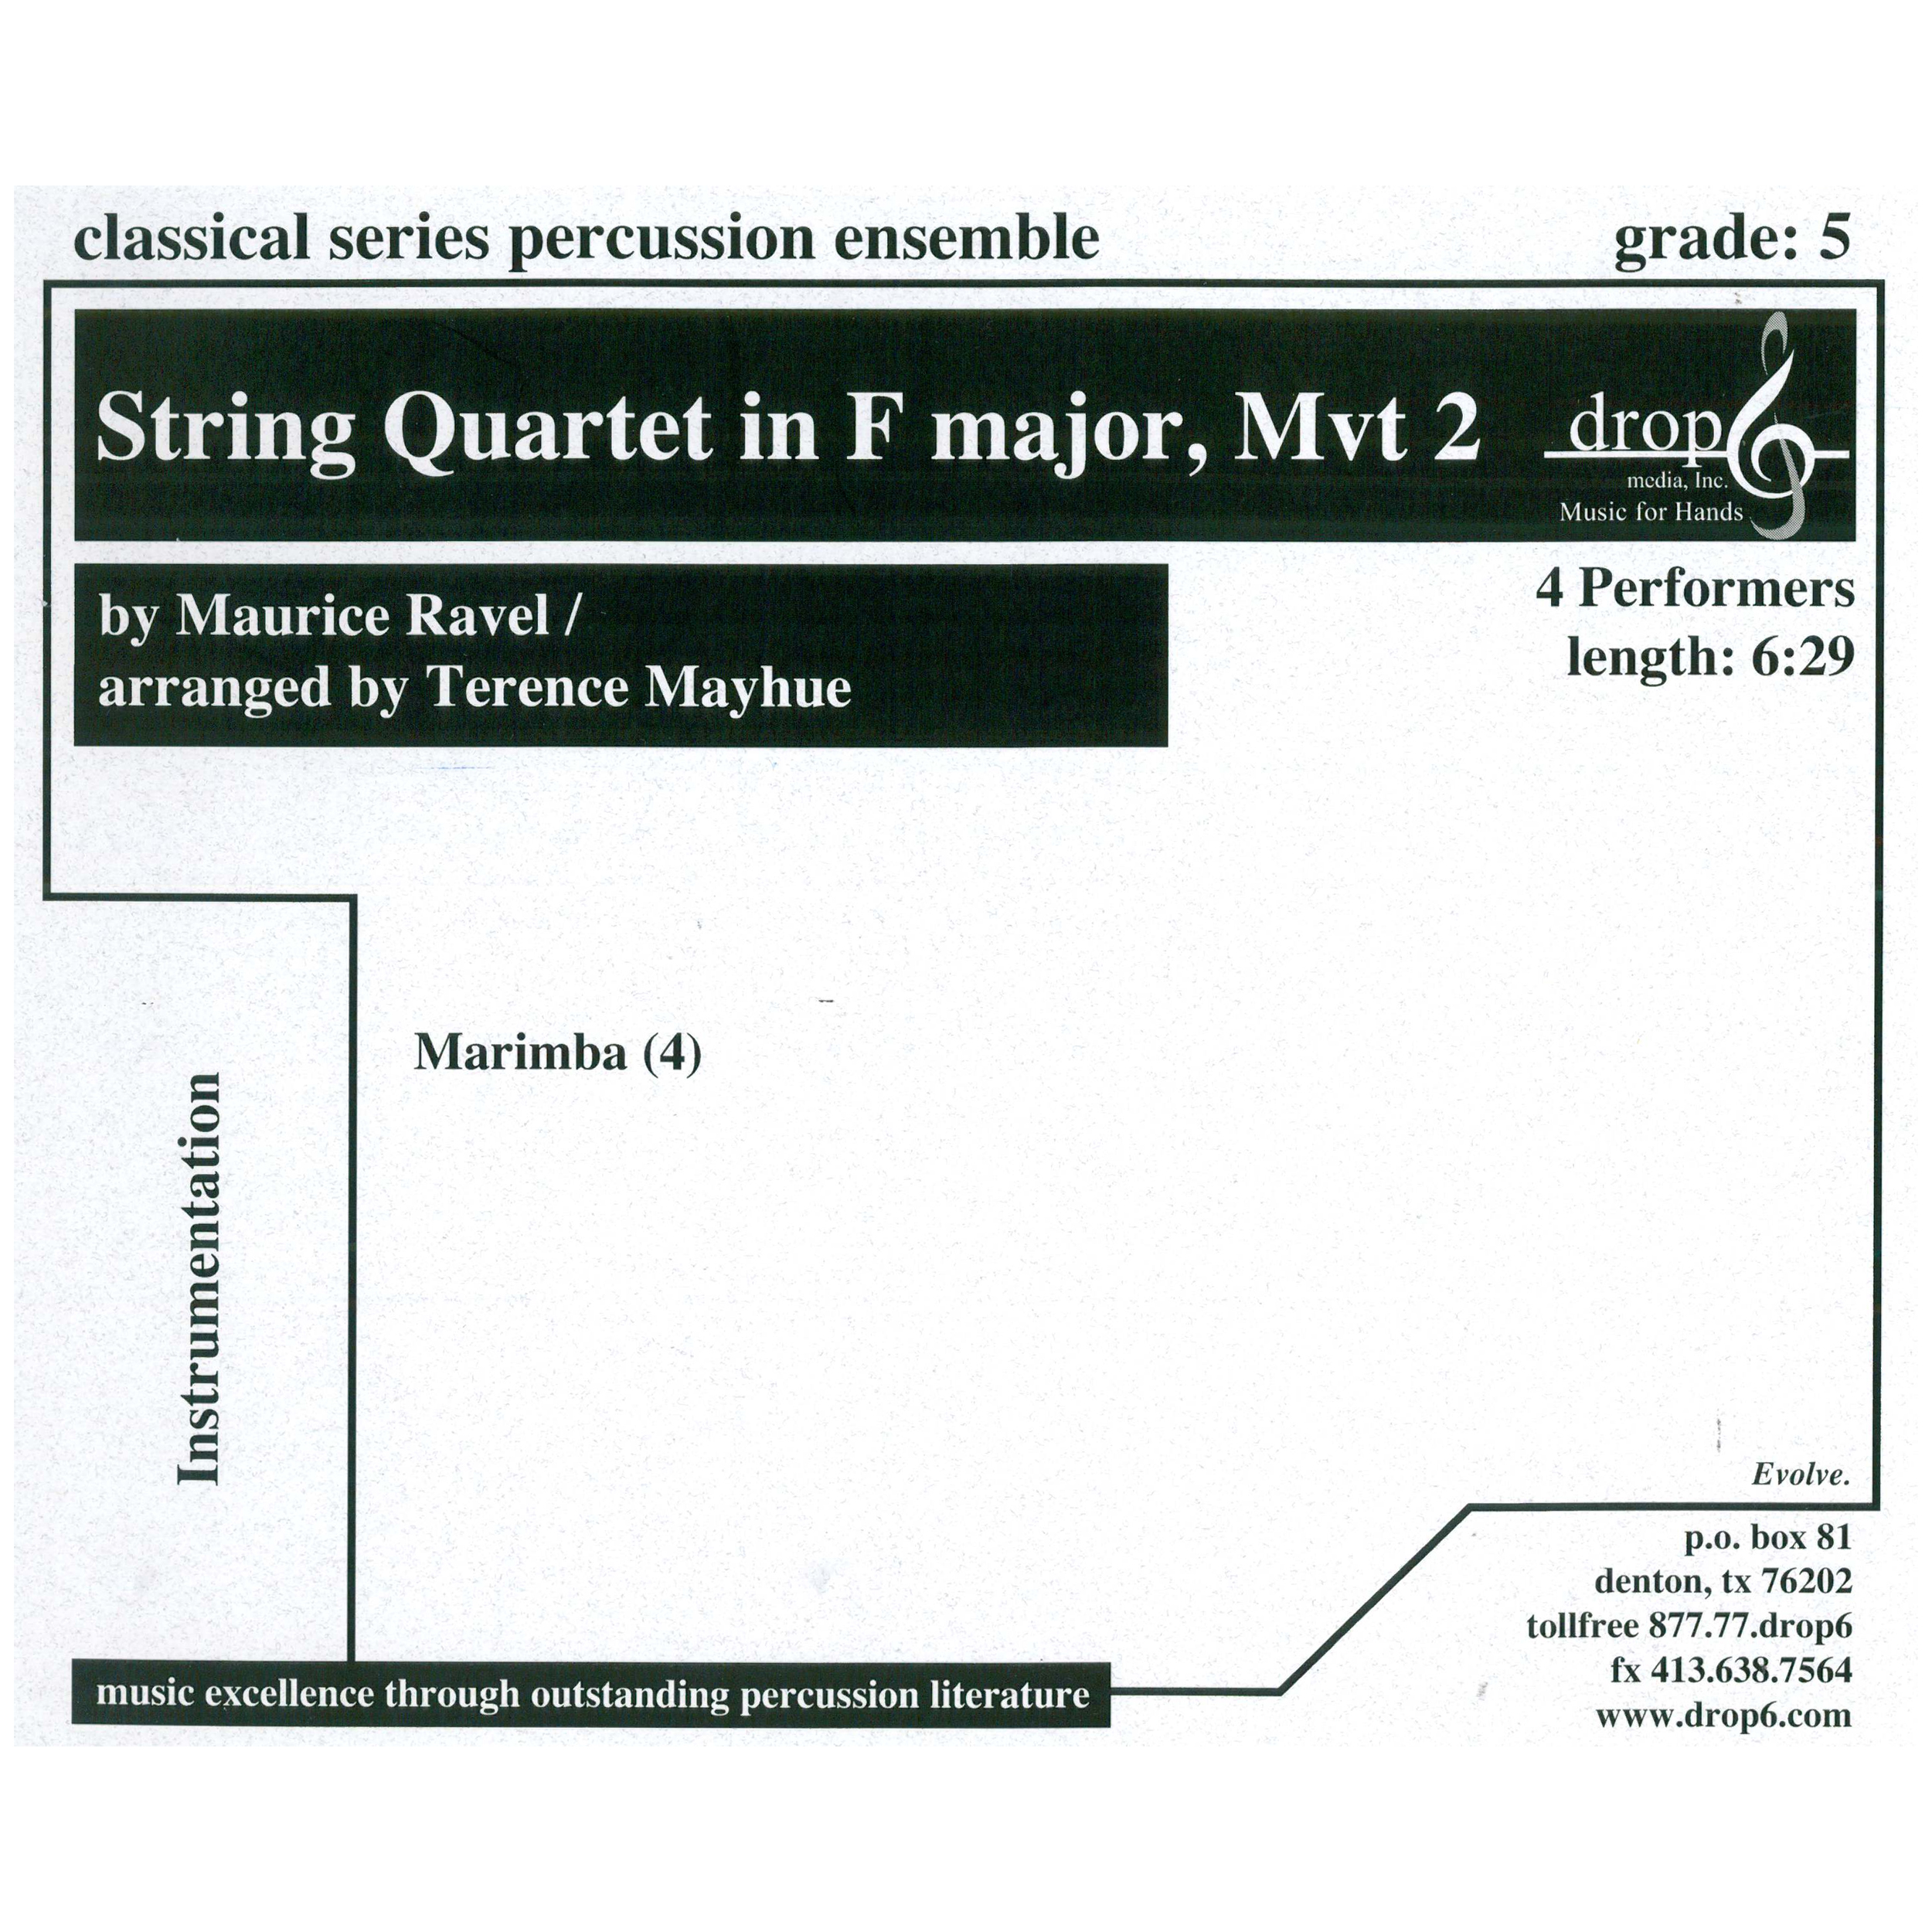 String Quartet in F, Mvt.2 by Ravel arr. Terence Mayhue